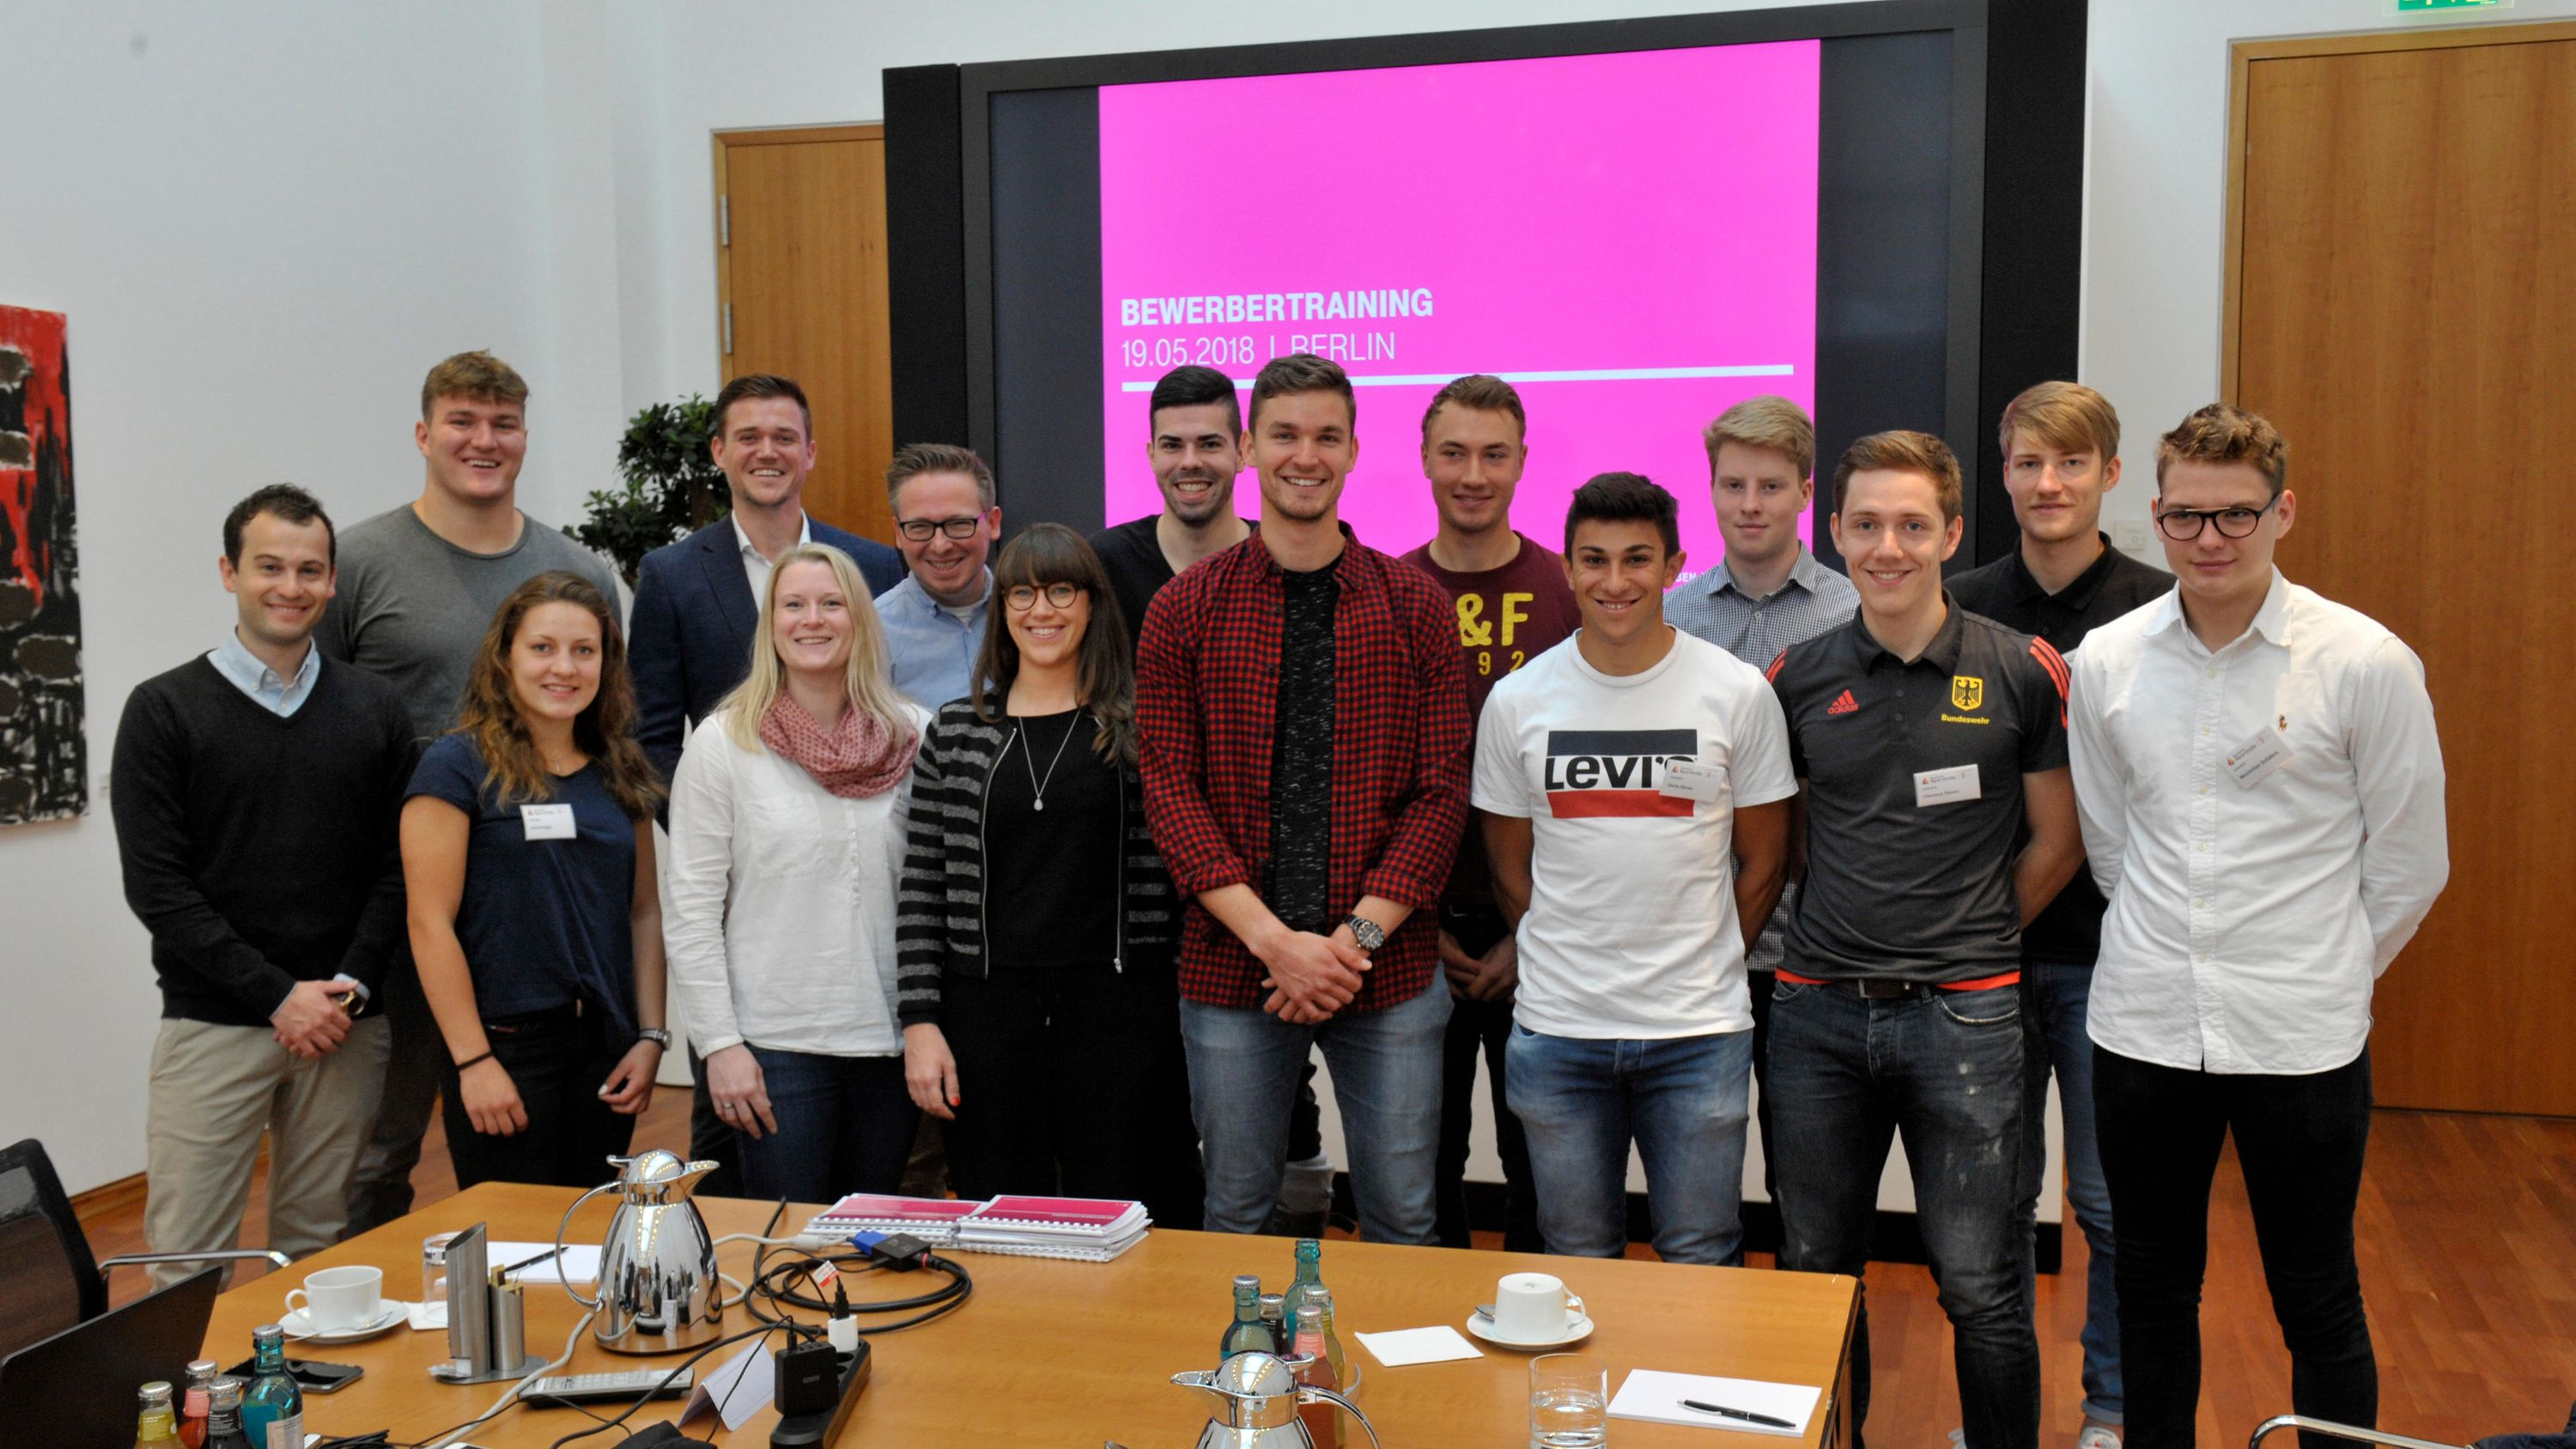 The participants of the application training session at Deutsche Telekom's Berlin Representative Office.